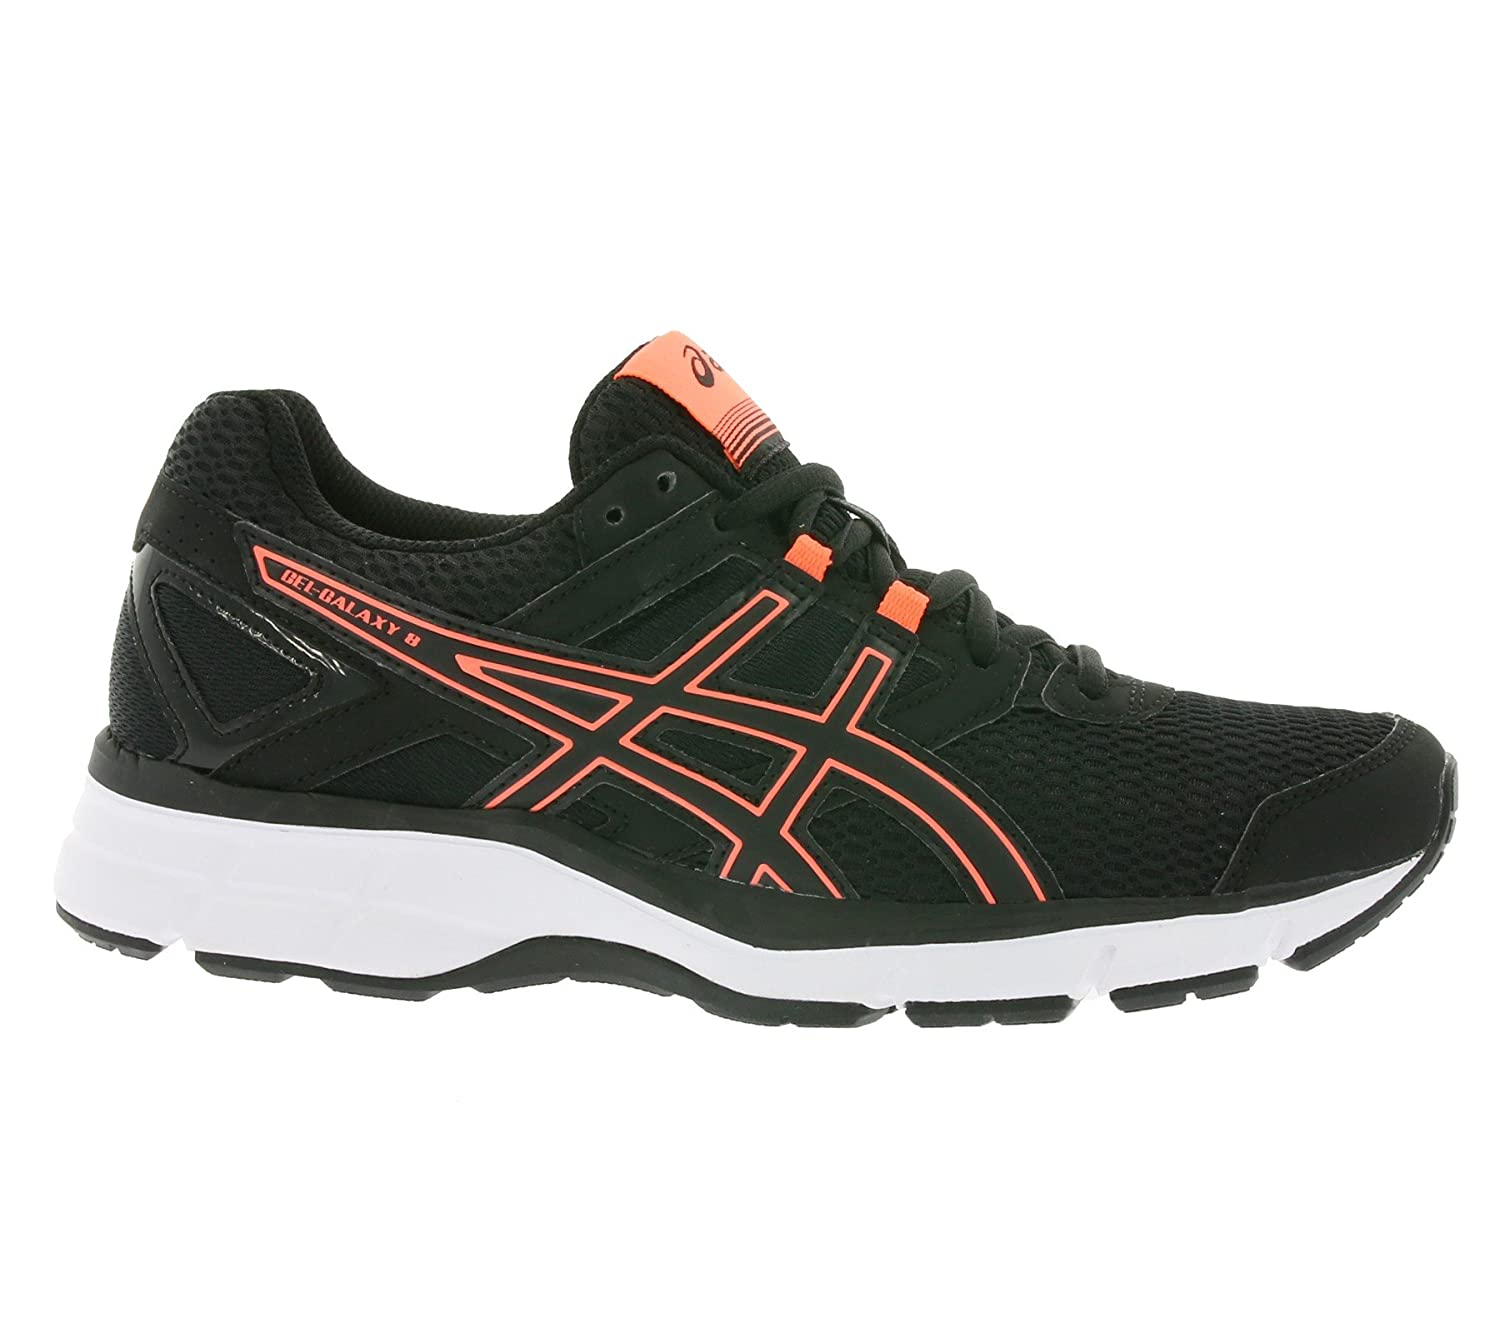 Asics Gel-Galaxy 8 Womens Zapatillas para Correr - SS16-43.5: Amazon.es: Zapatos y complementos